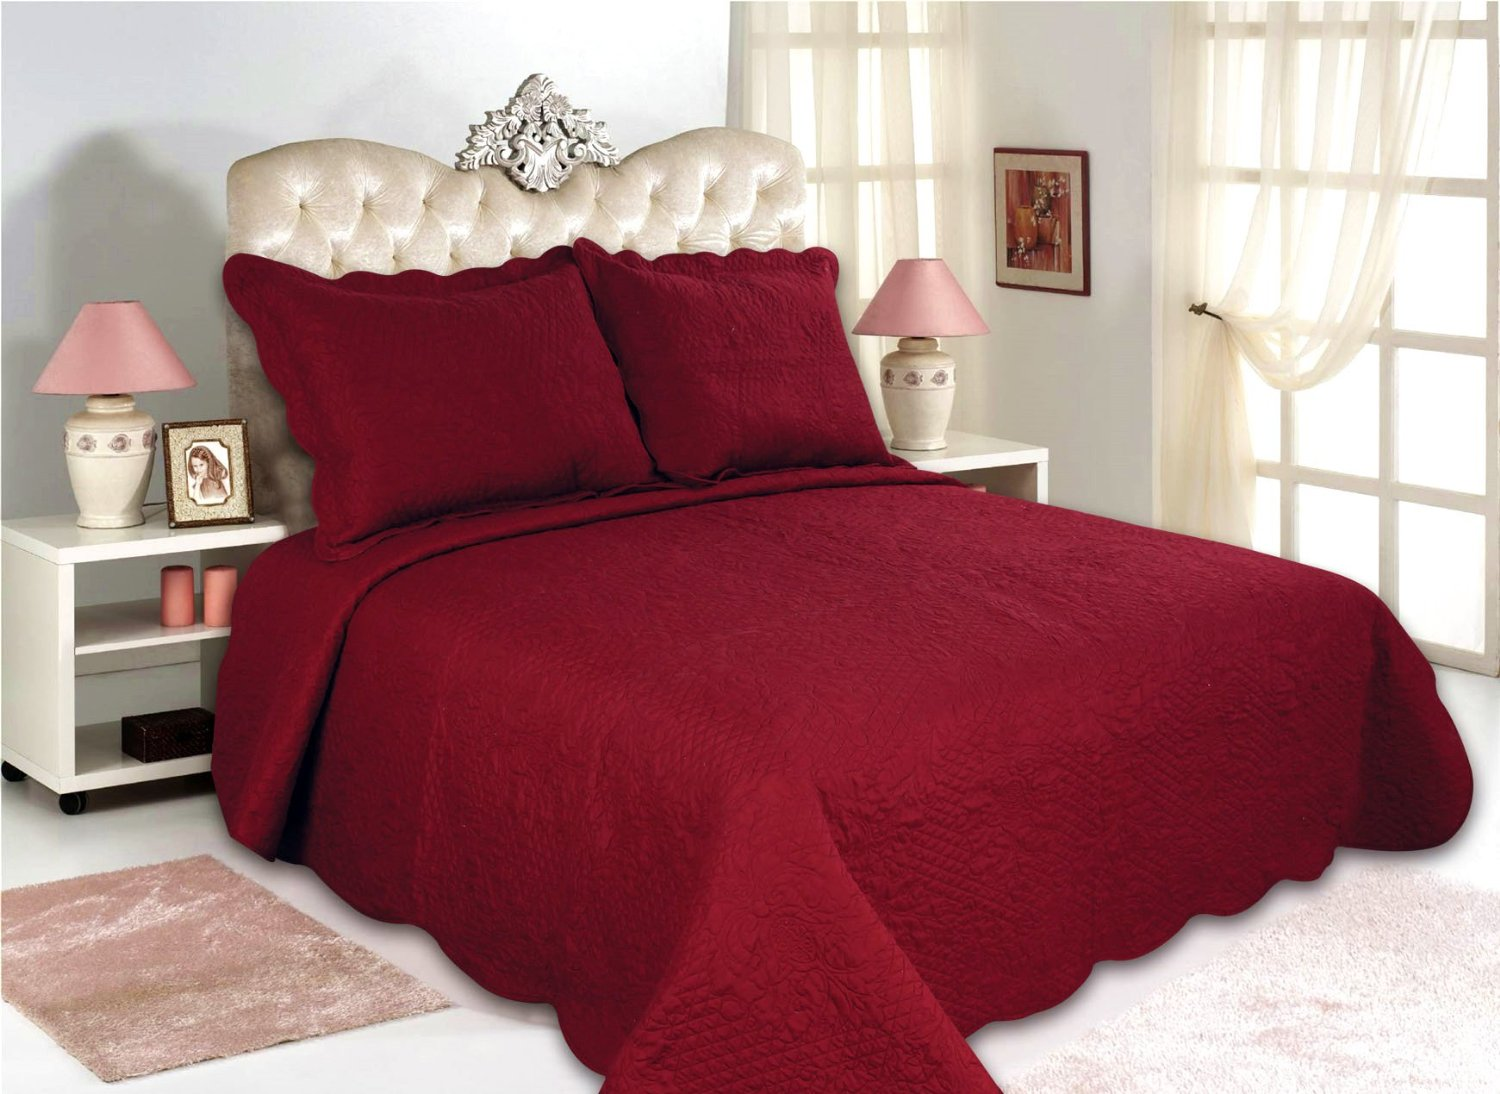 "ALL FOR YOU 3pc Reversible Quilt Set, Bedspread, and Coverlet-Burgundy Color -110"" x 100""-(Burgundy, Larger King)"